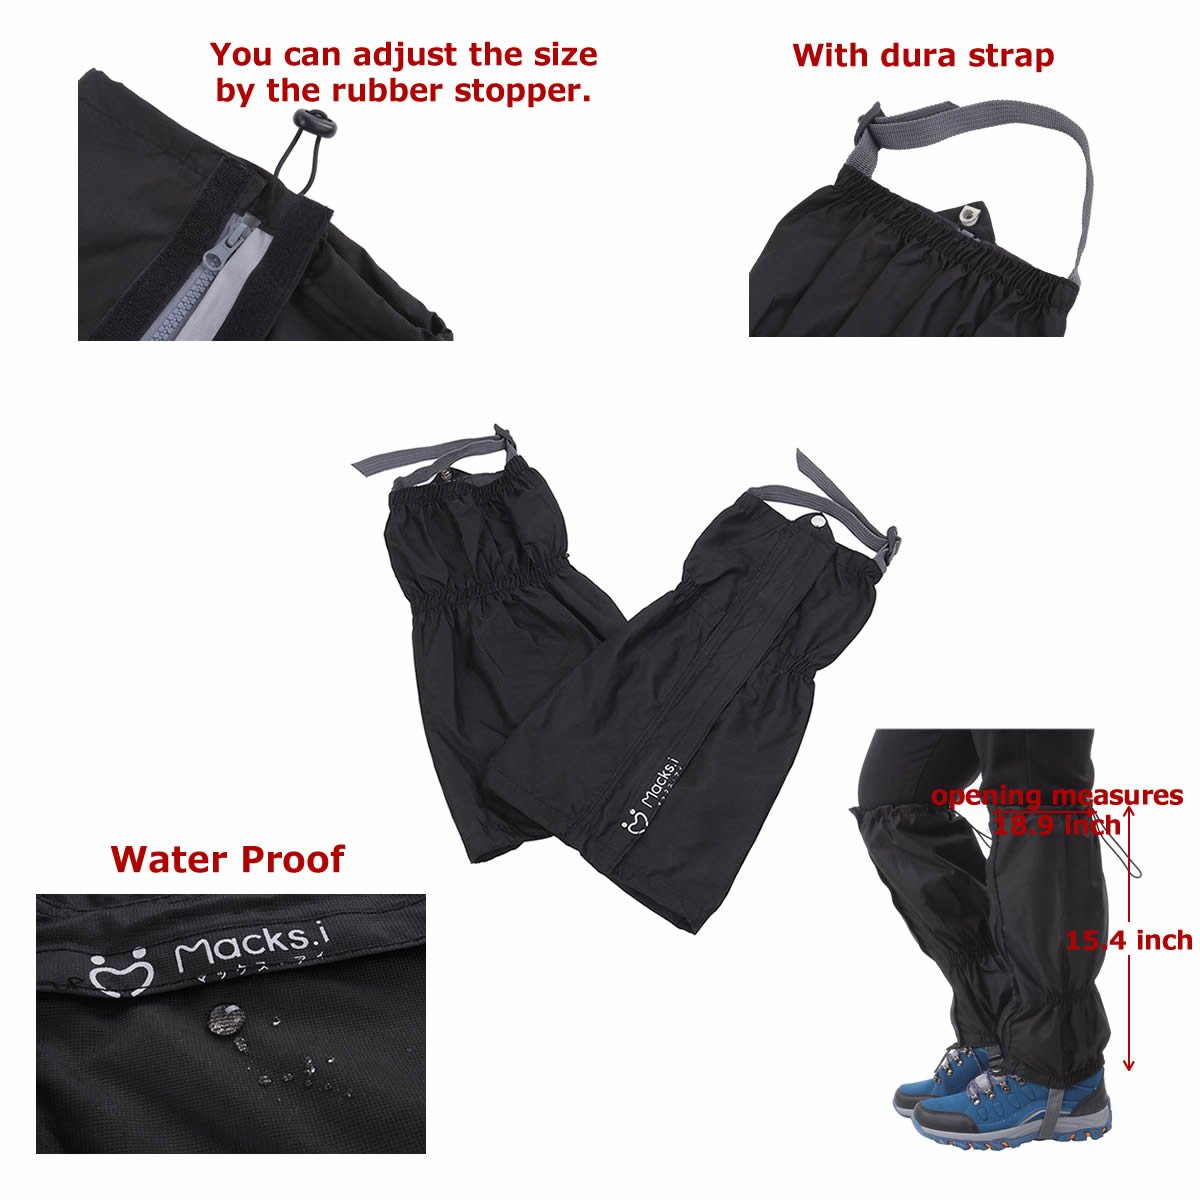 Macks.i Outdoor Unisex Waterproof Camping Hiking Gaiters High Leg Cover 1pair with a Free Shoe Bag by Macks.i (Image #3)